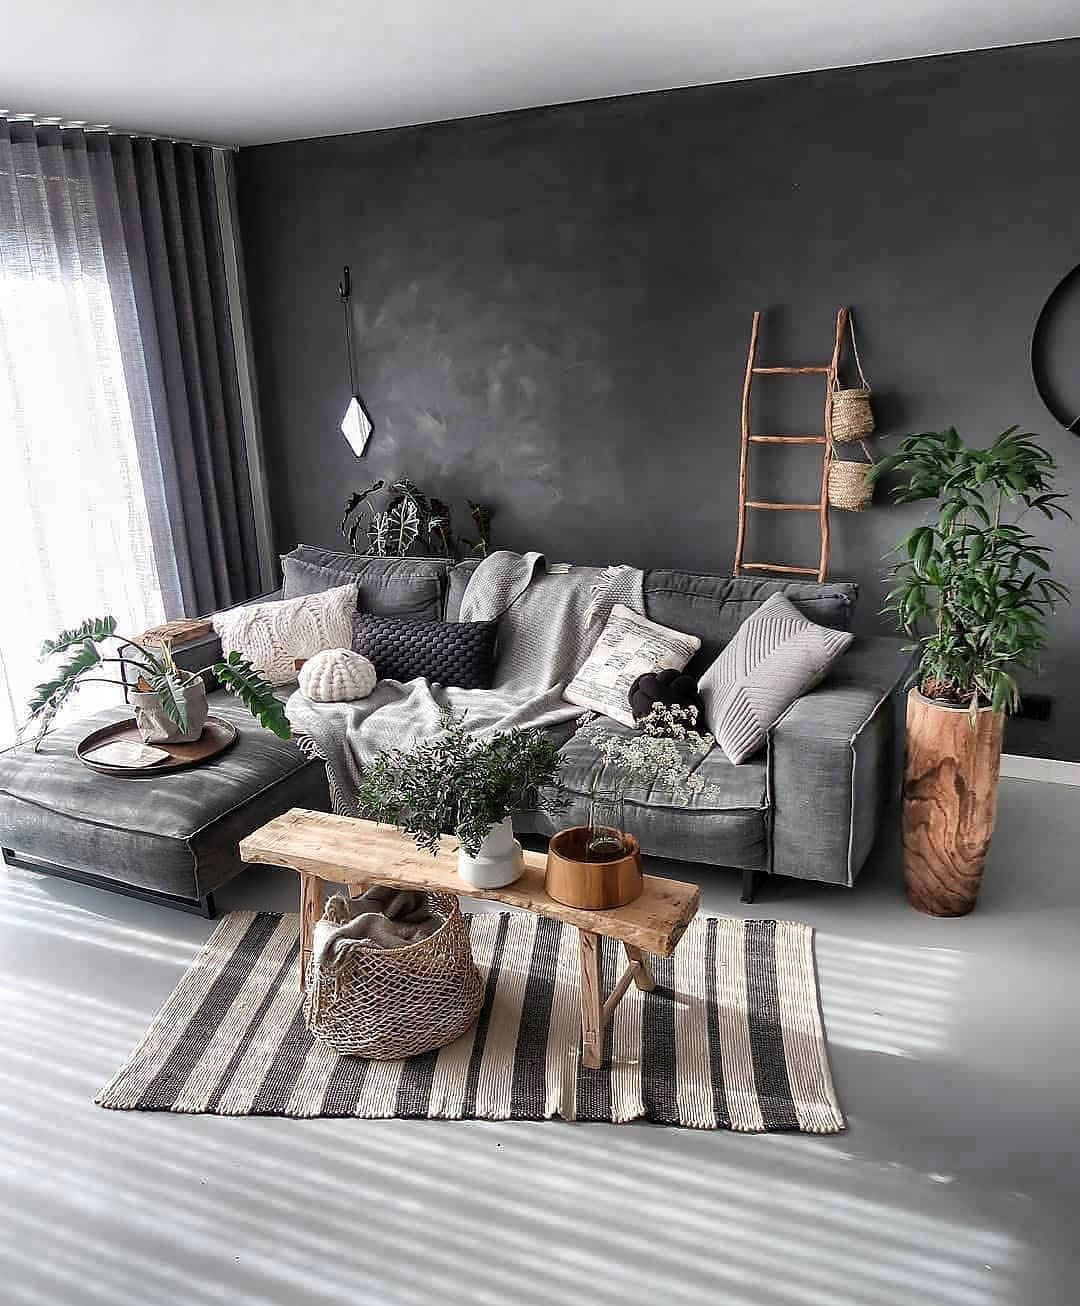 99 Beautiful White And Grey Living Room Interior: Best Interiors On Instagram